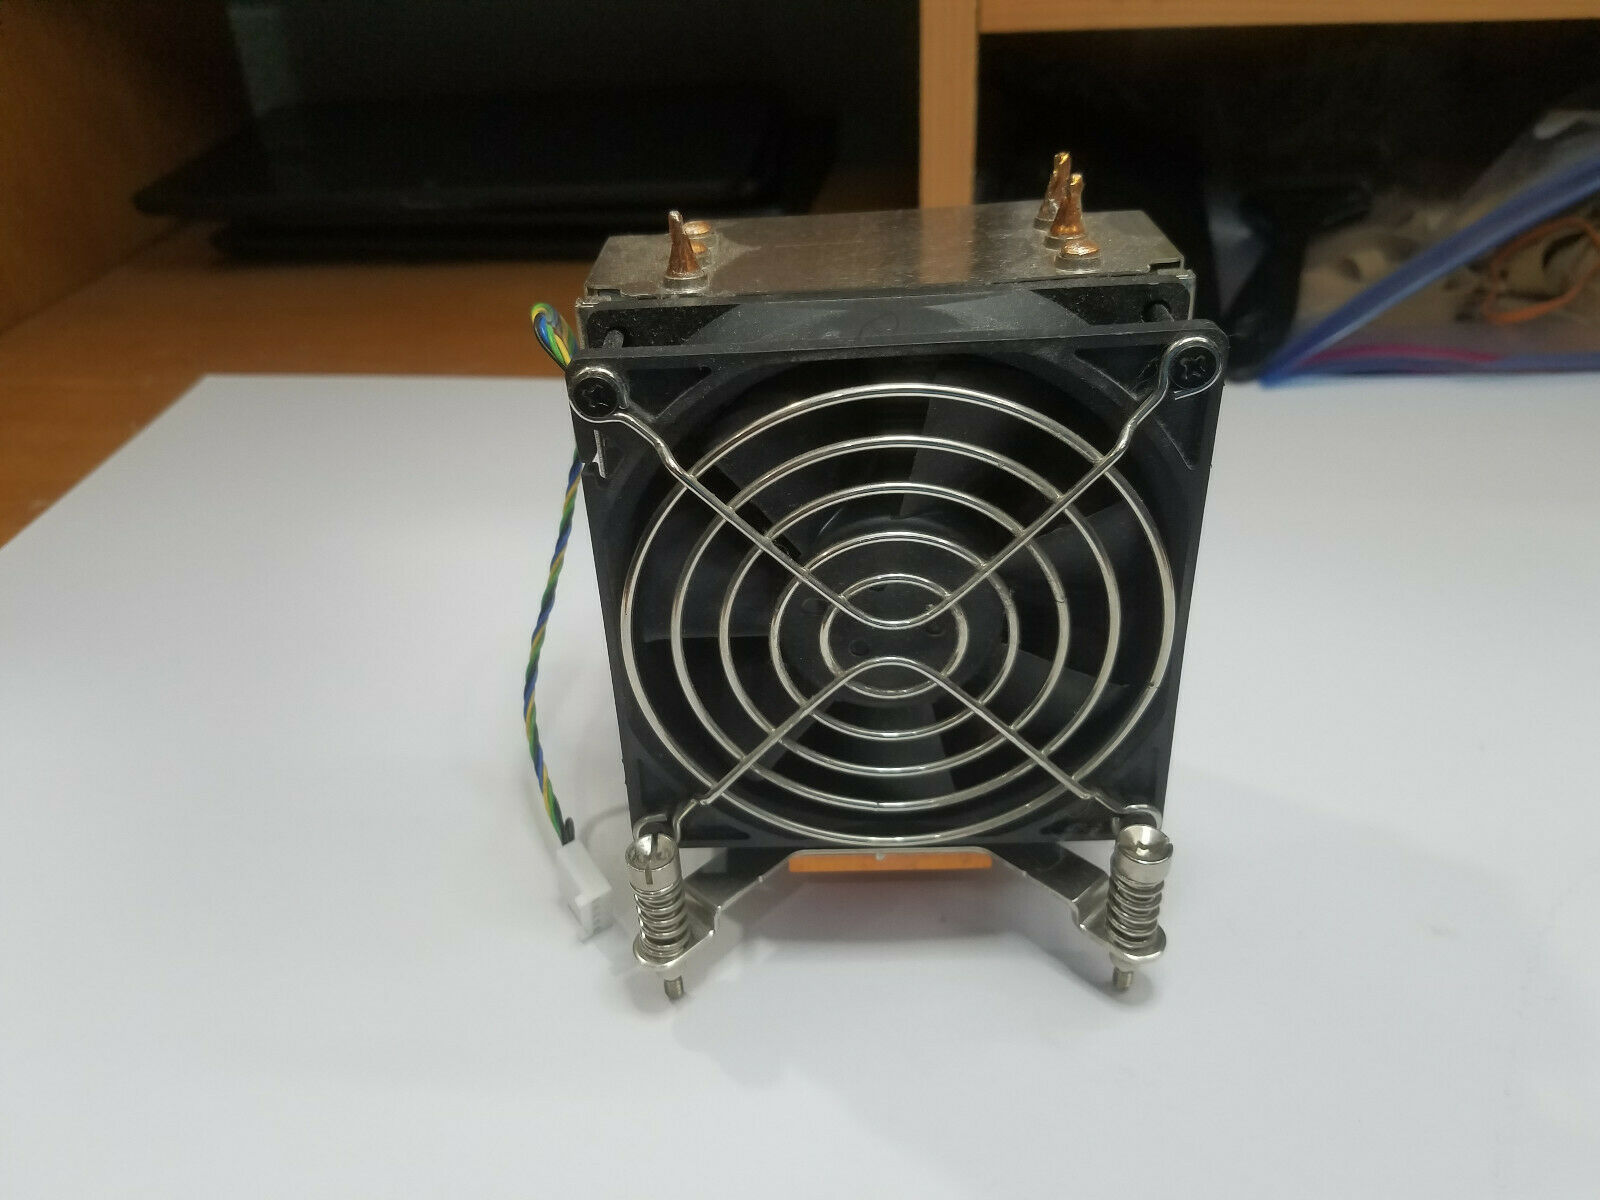 New For HP 683191-001 683193-001 685477-001 680551-001 CPU FAN With Heatsink